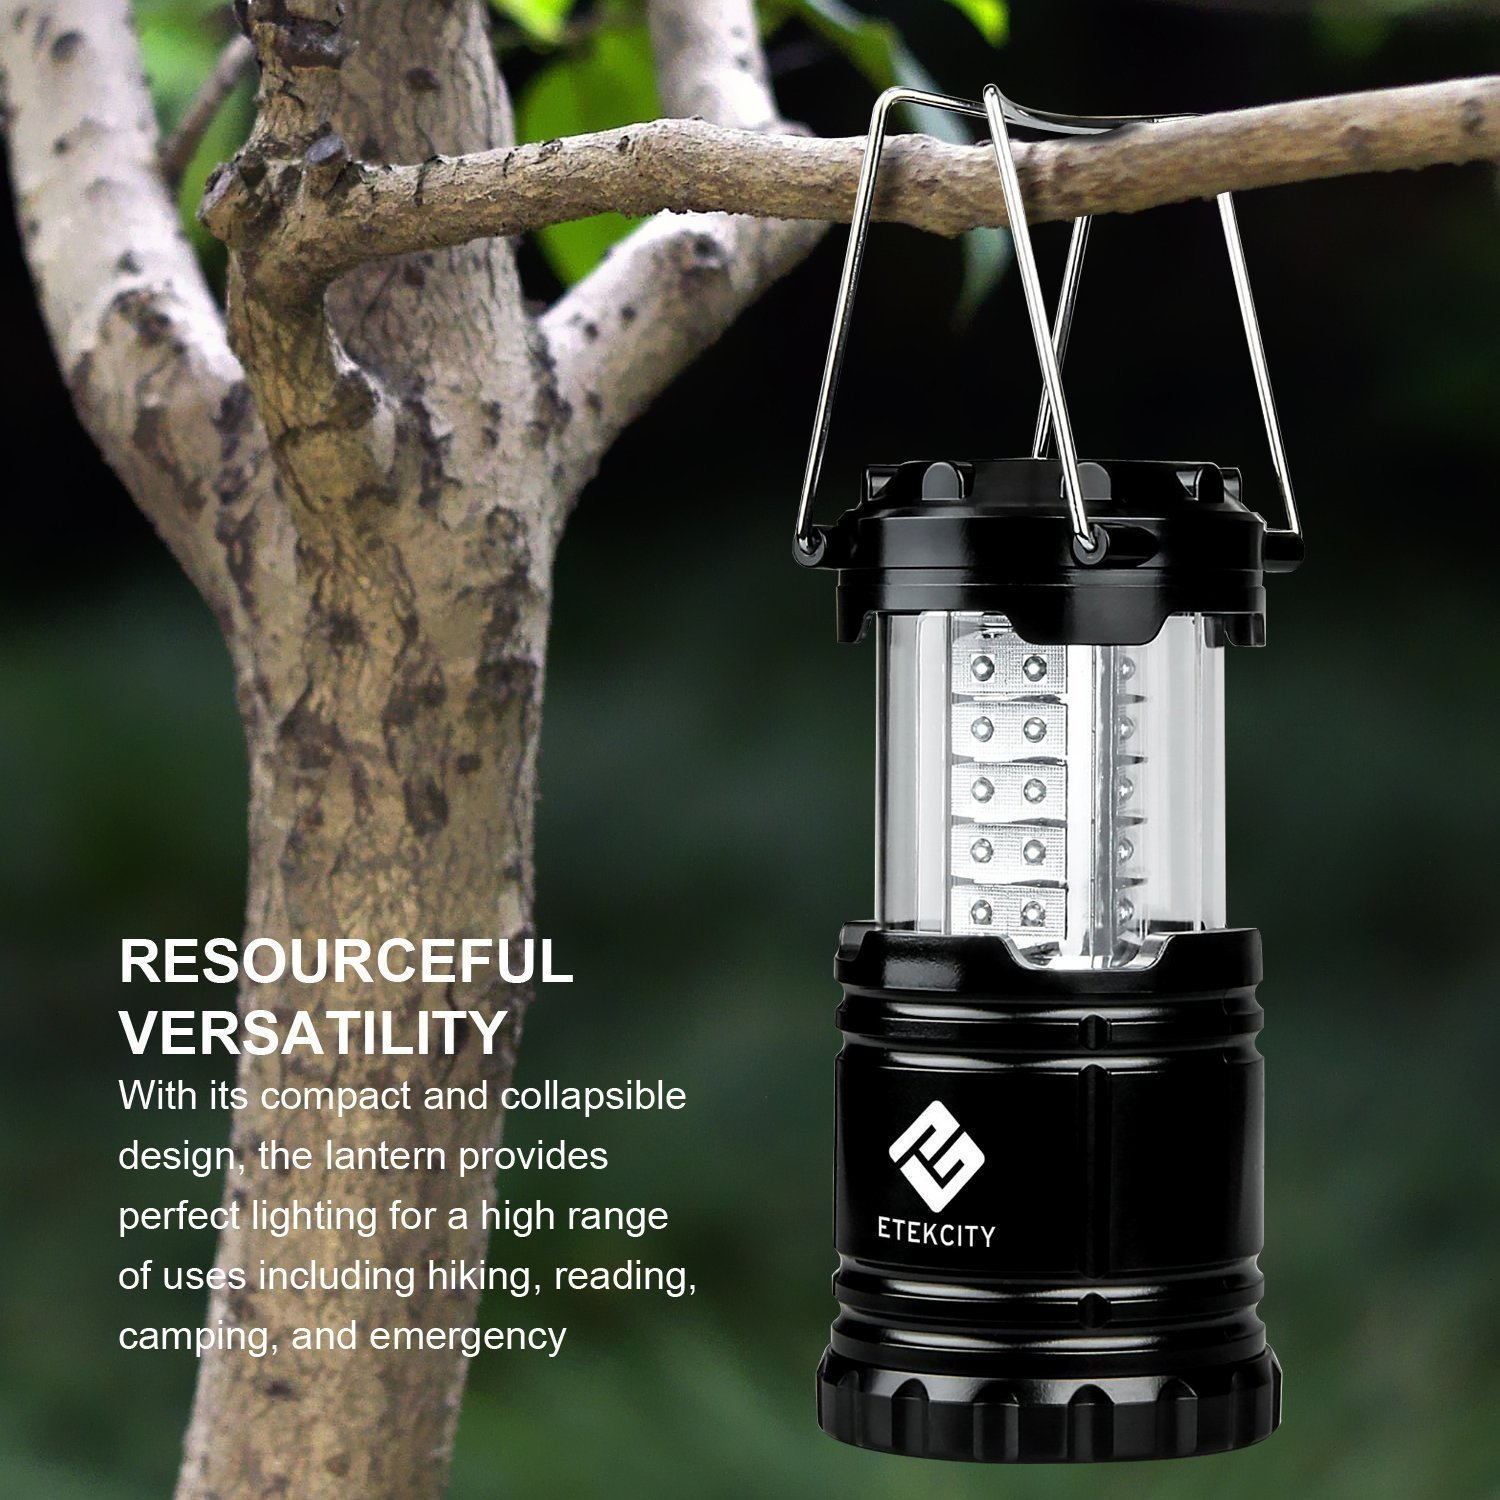 Effective 4 Pack Portable Camping Lantern LED with 12 AA Batteries Survival Kit for Emergency Hurricane Power Outage CL10 lamp